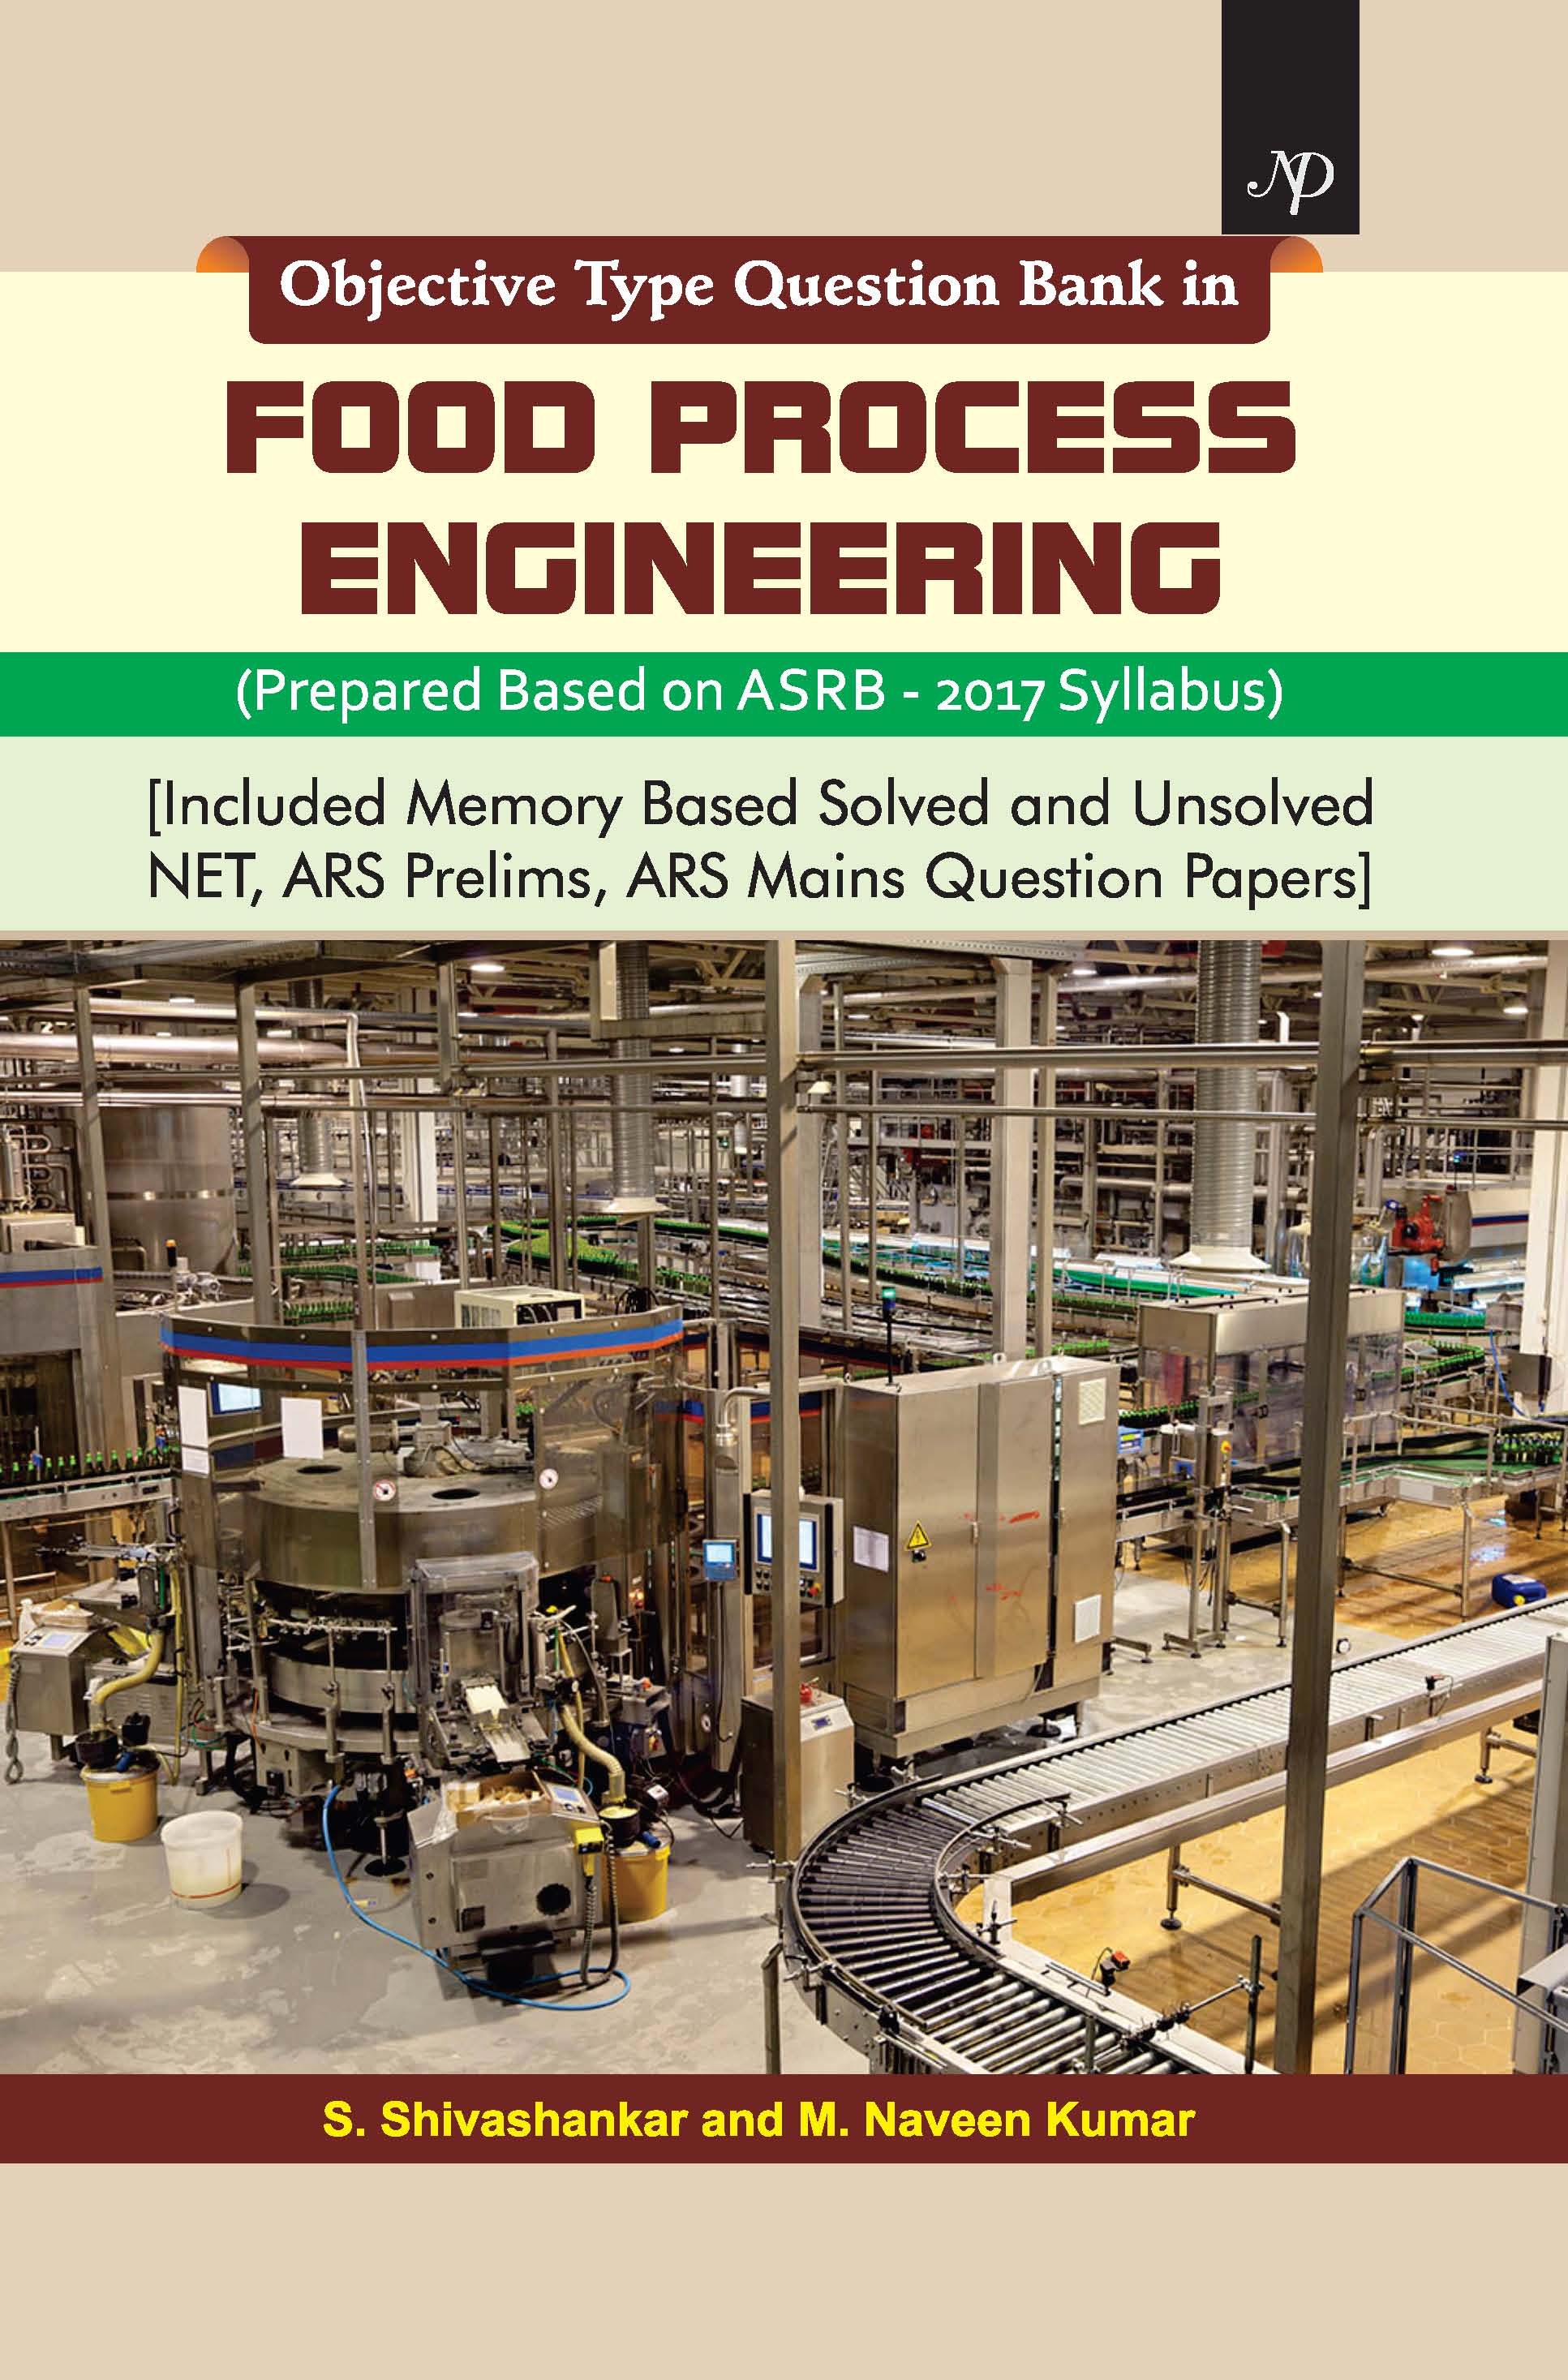 Objective Type Question Bank in FOOD PROCESS ENGINEERING,(Prepared Based on ASRB - 2017 Syllabus) [Included Memory Based Solved and Unsolved NET, ARS